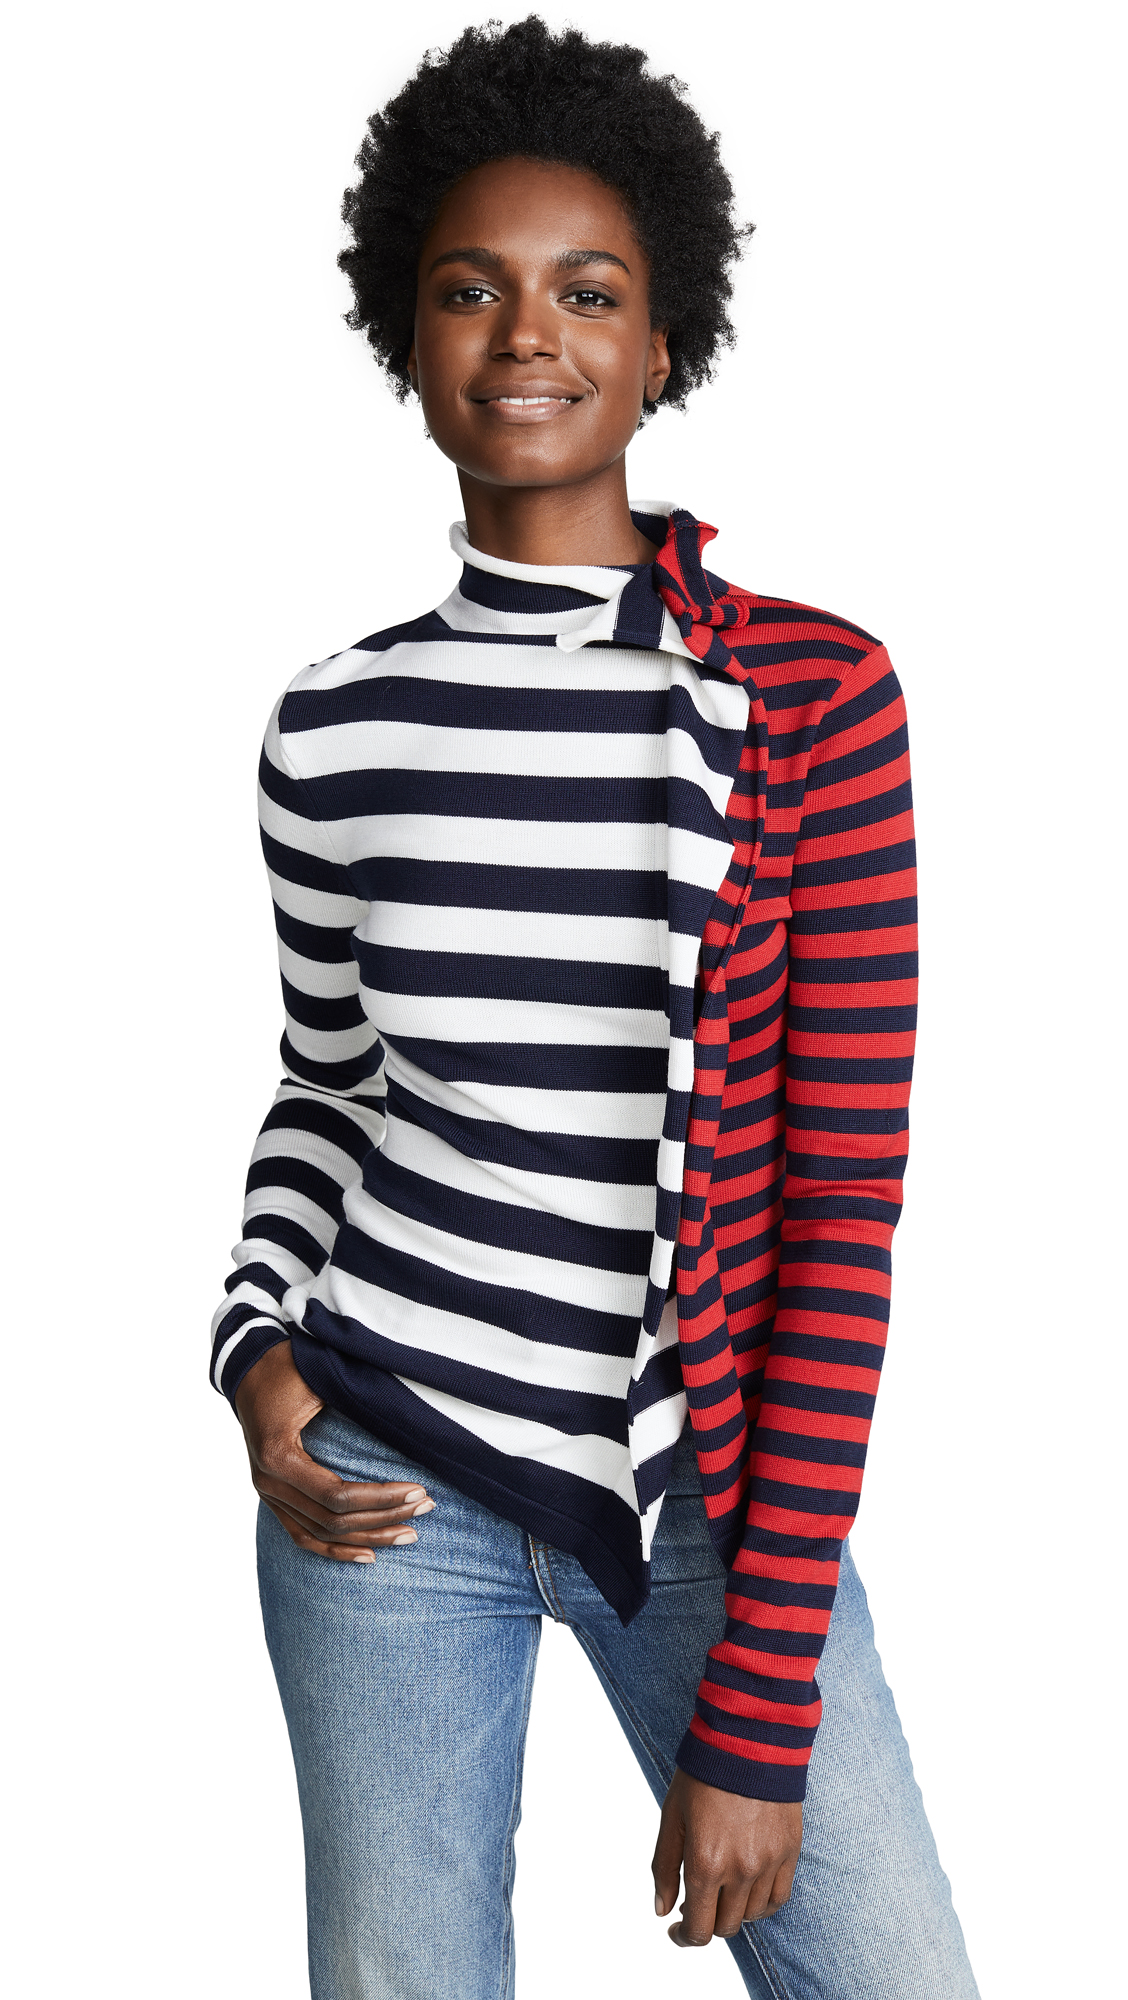 Ruffled Striped Wool-Jersey Turtleneck Sweater in White/Red/Navy